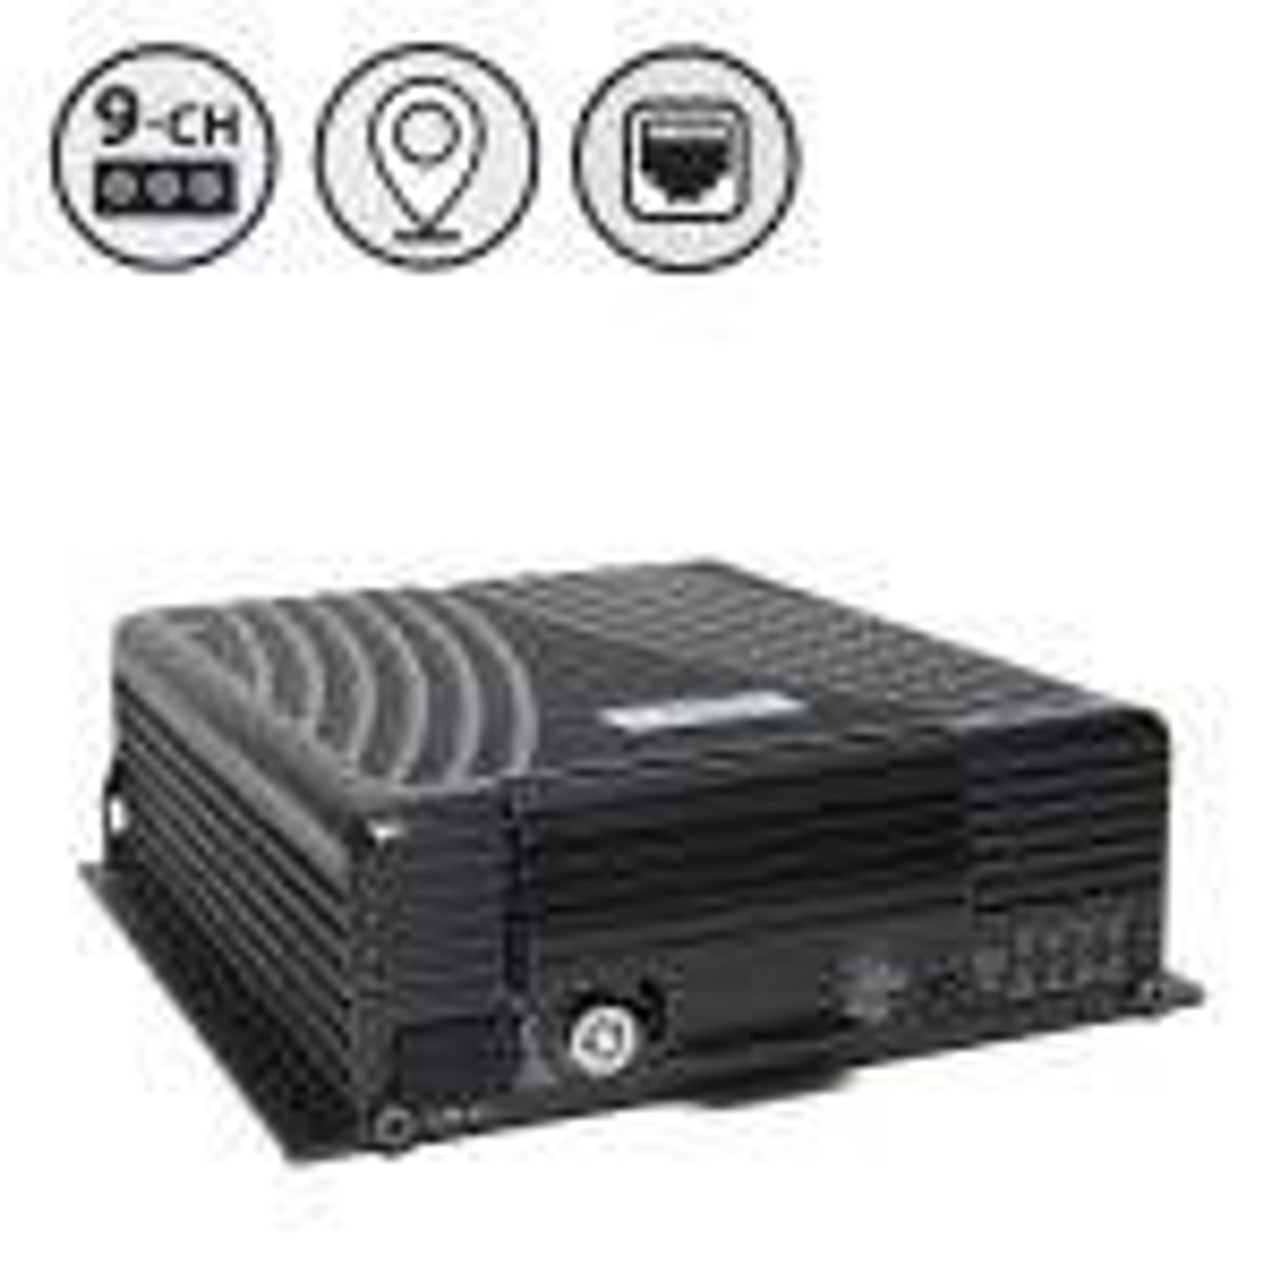 "MobileMule™ 8150 | 9 Channel Mobile DVR with Built-in GPS, 9"" RCA Display, Western Digital Hard Drive"